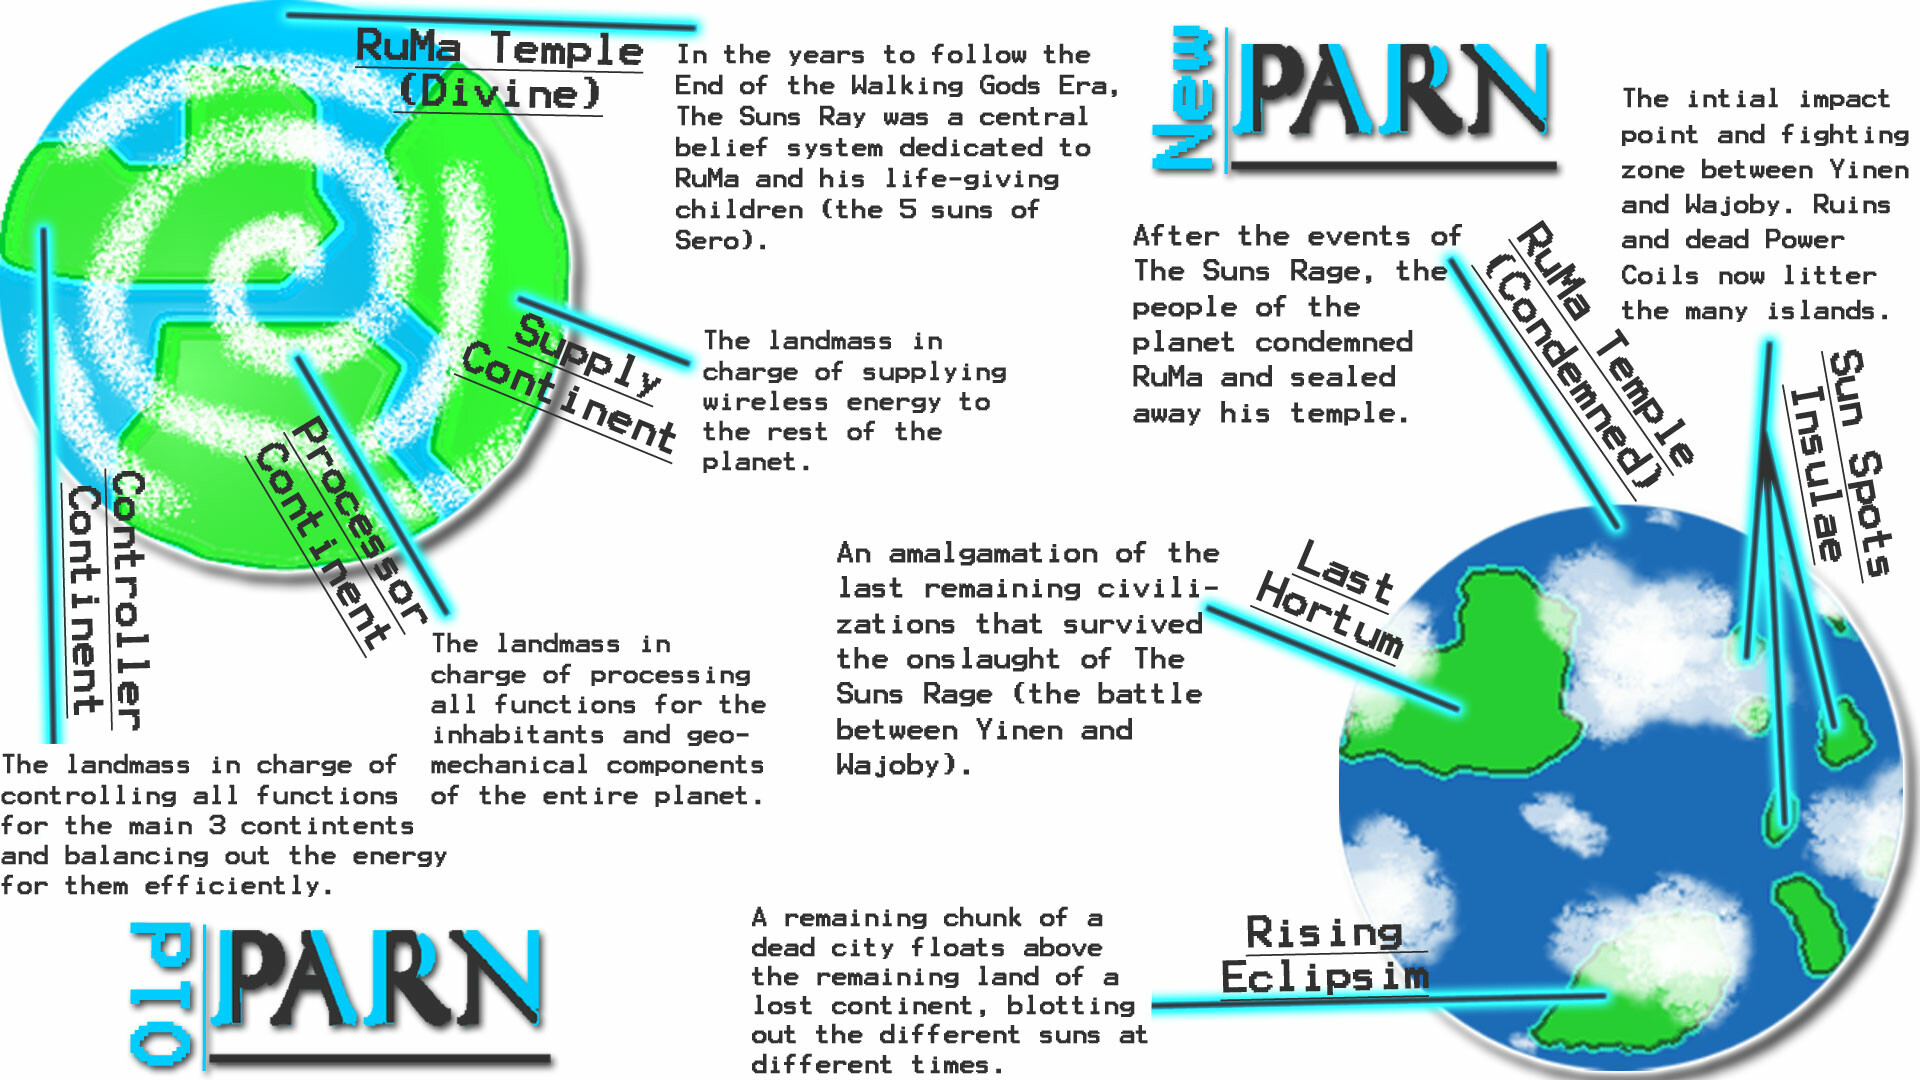 The original concepts for how Par'N changes over time